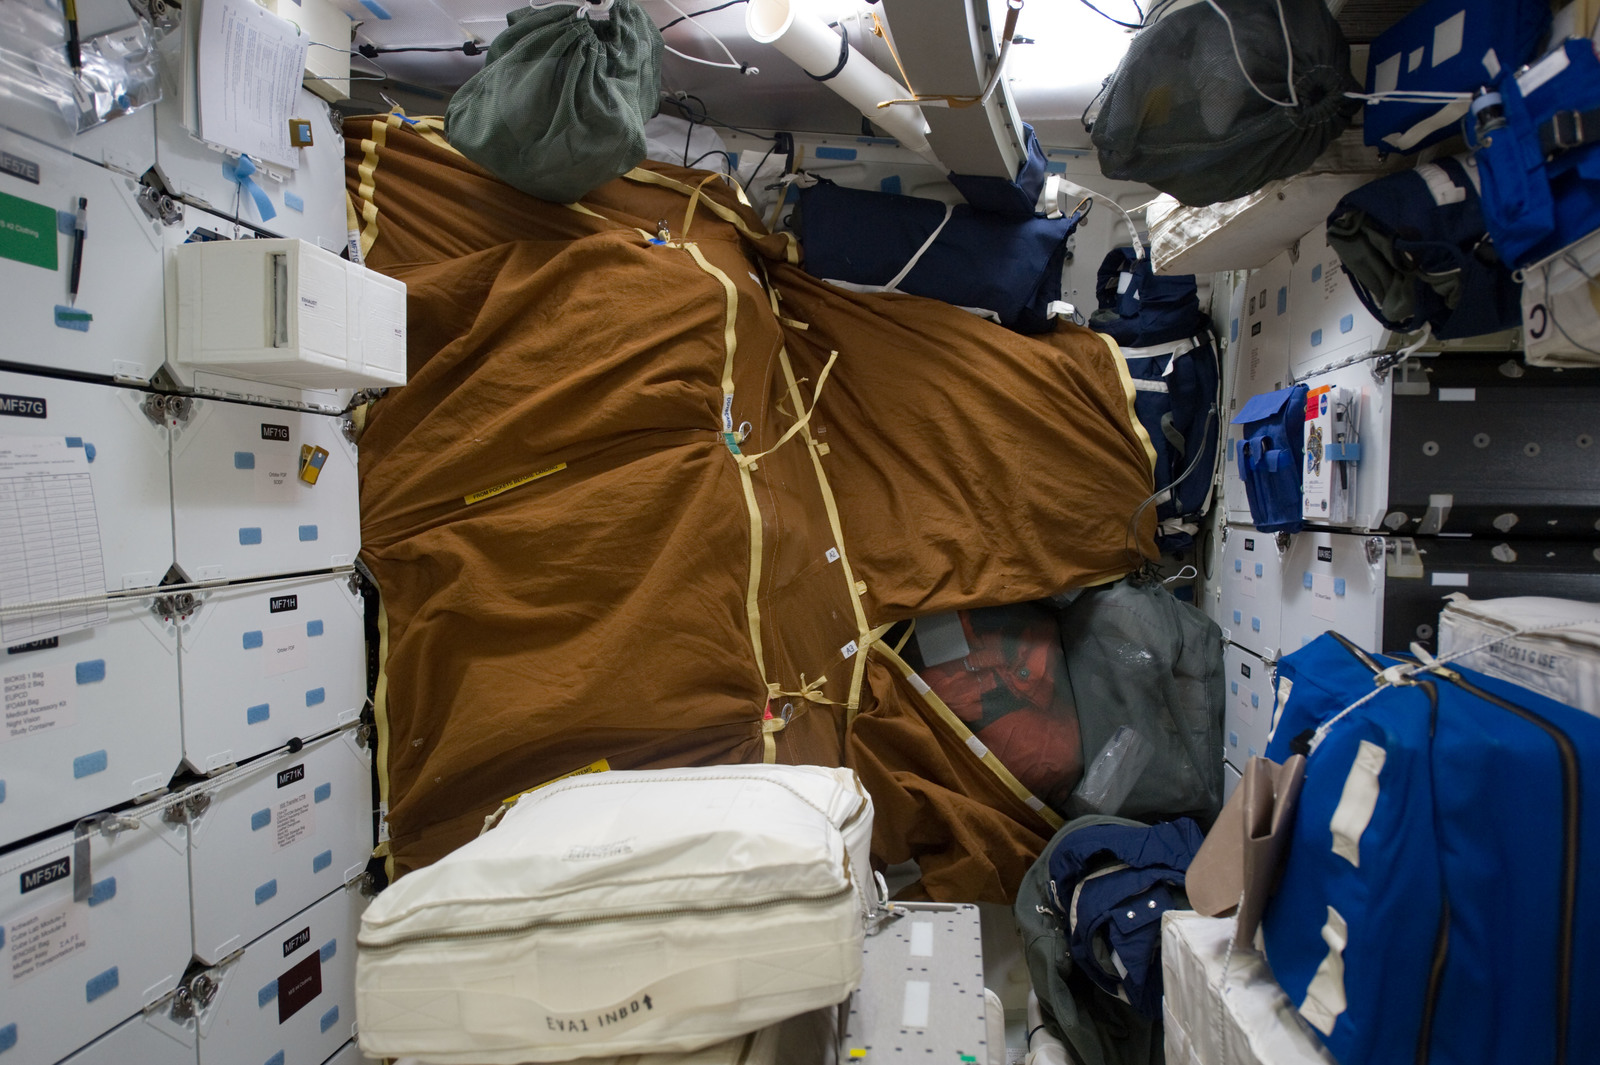 S134E006524 - STS-134 - View of Stowage on the Shuttle Endeavour Middeck